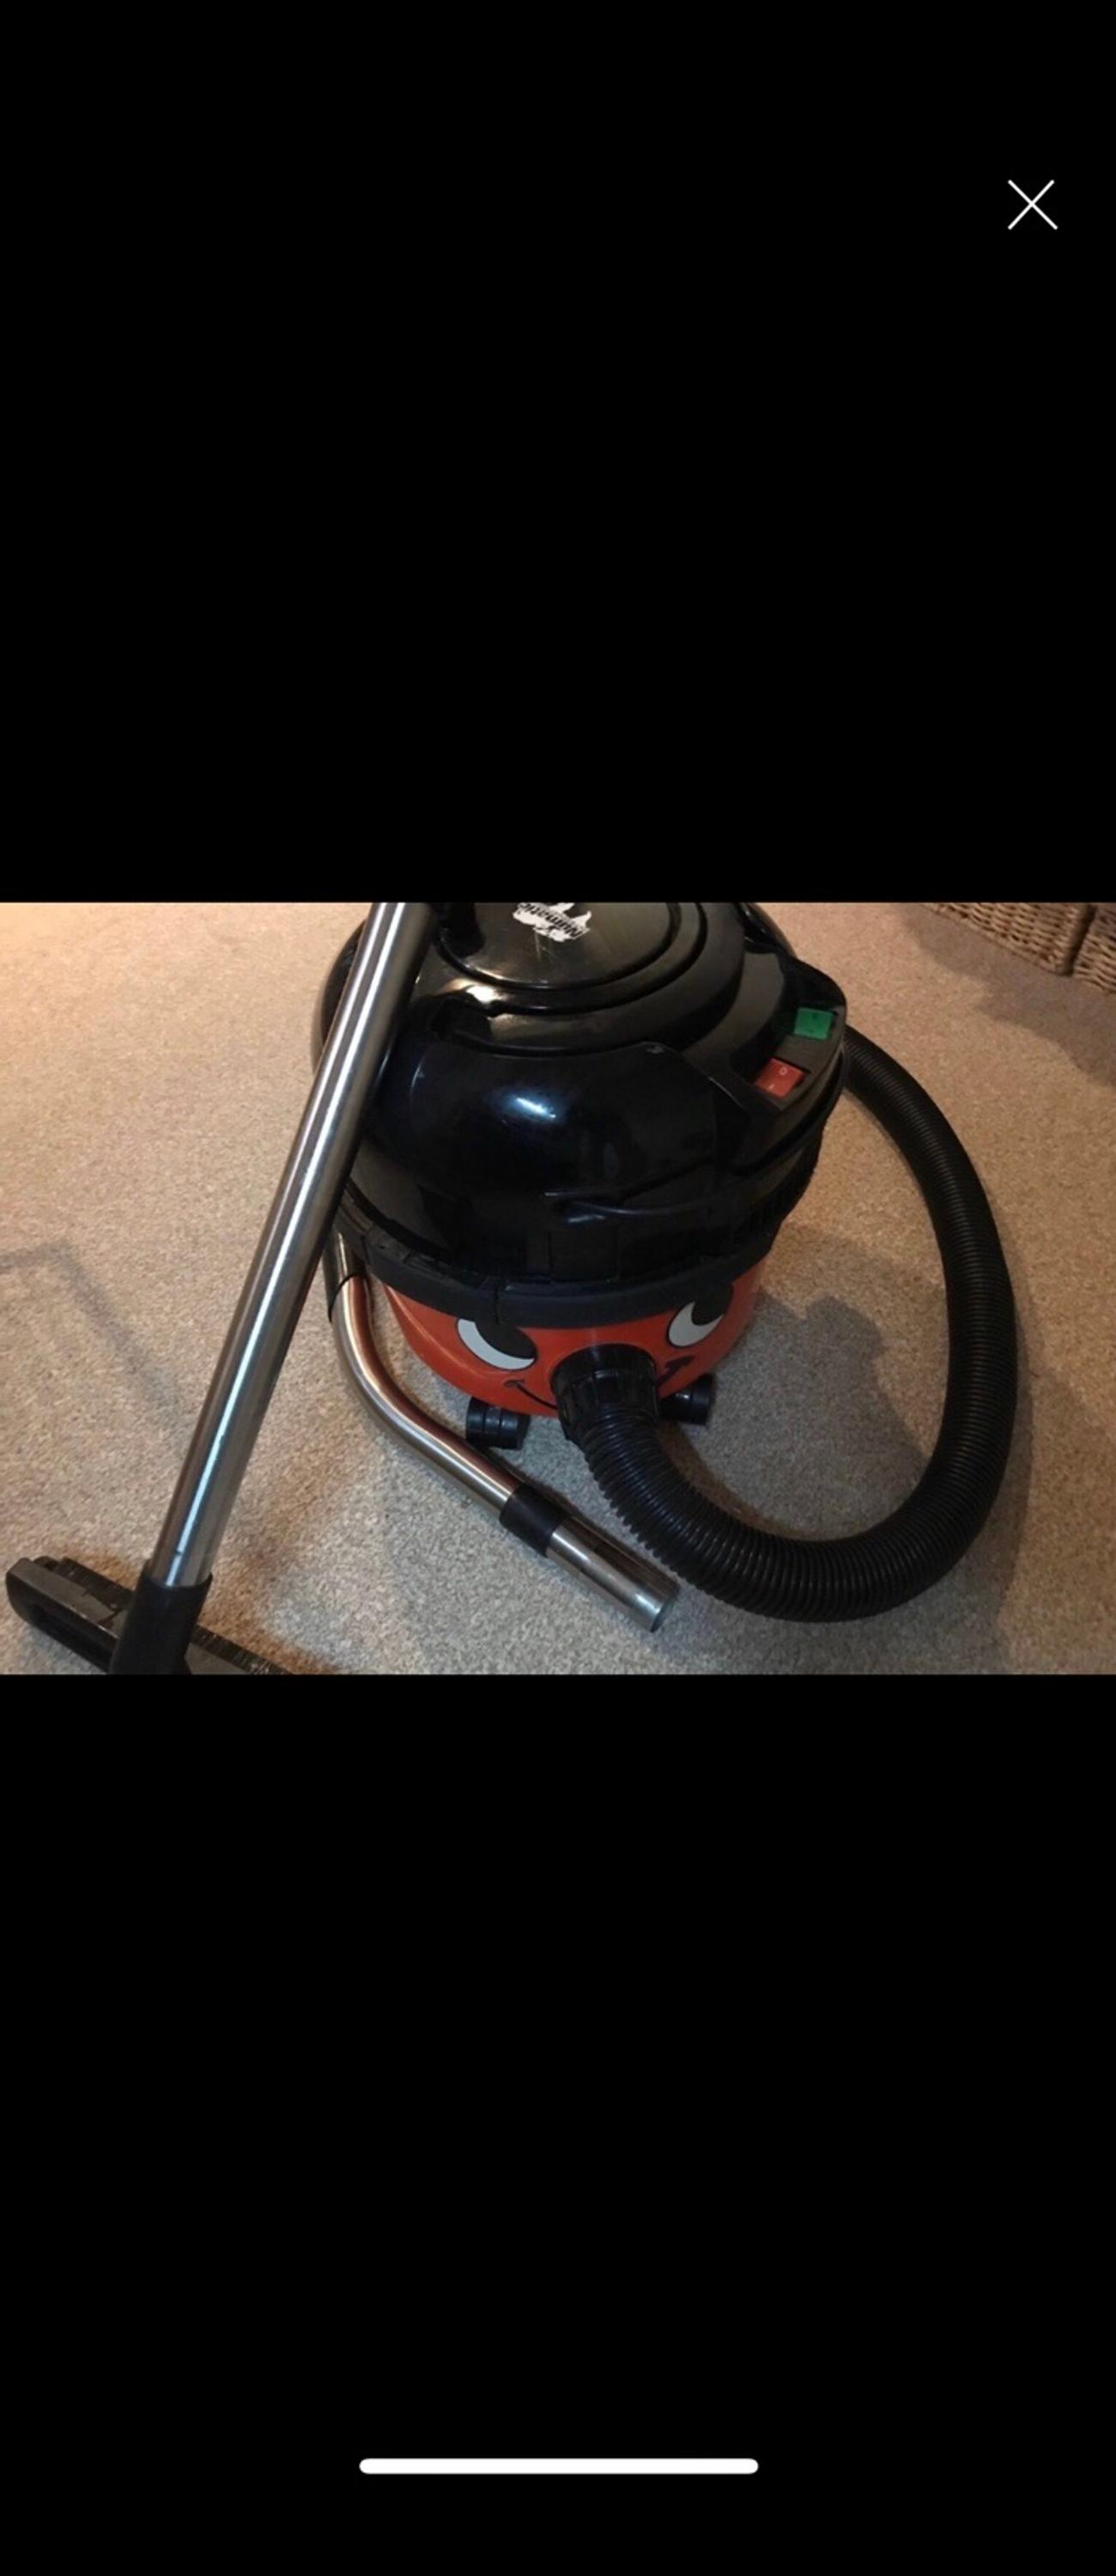 Henry vacum cleaner 2 speeds And good working order complete  Can deliver locally if you need too